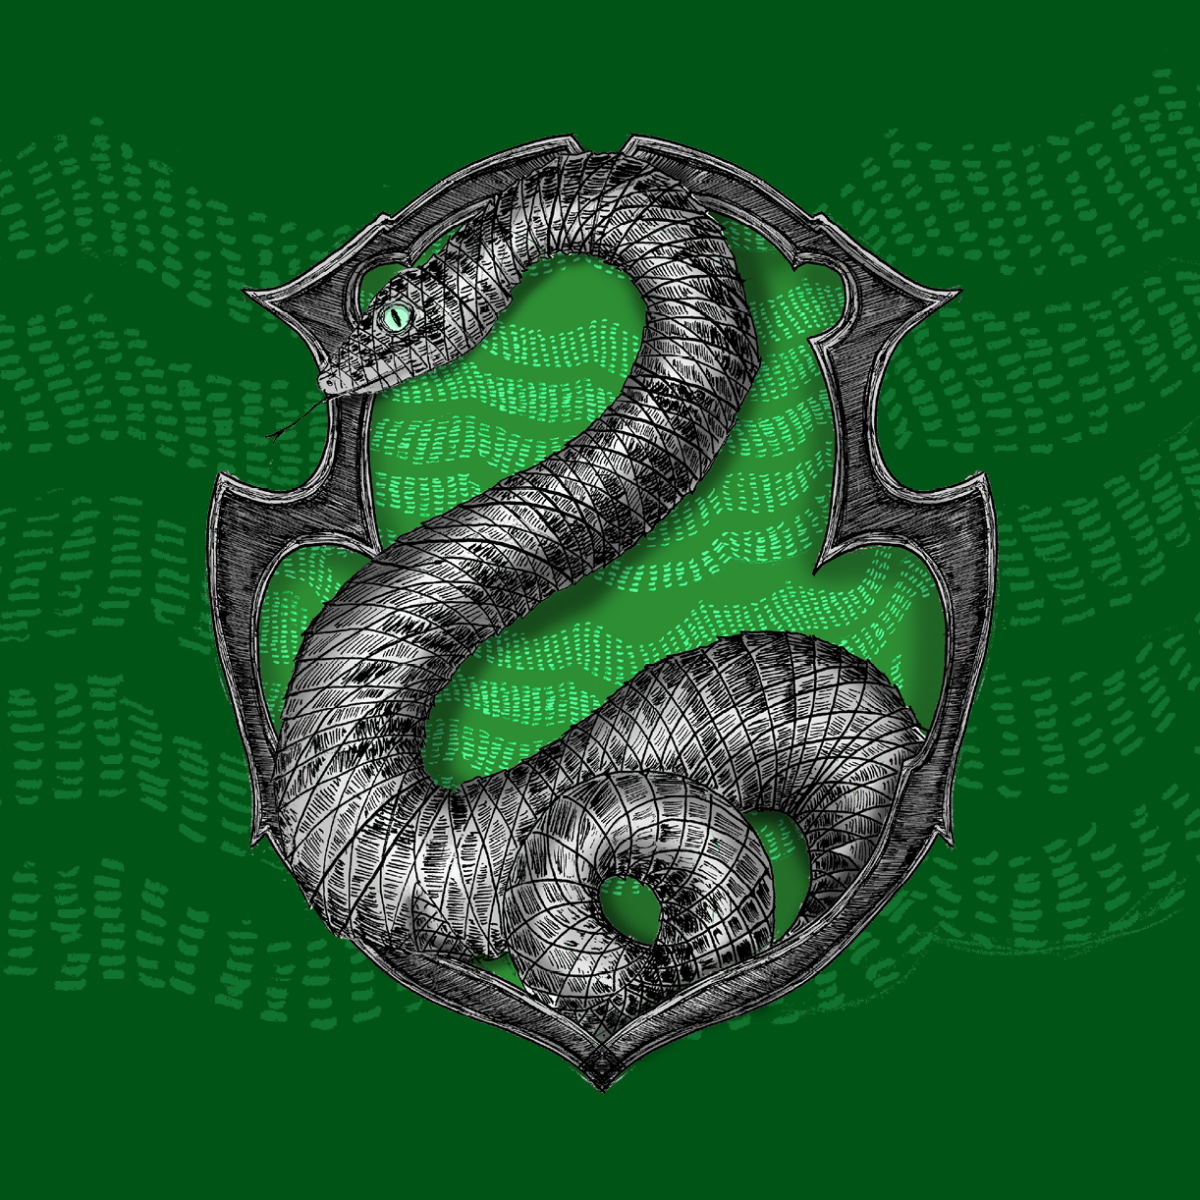 Slytherin Produces More Than Its Share Of Dark Wizards But Also Turns Out Leaders Who Are Proud